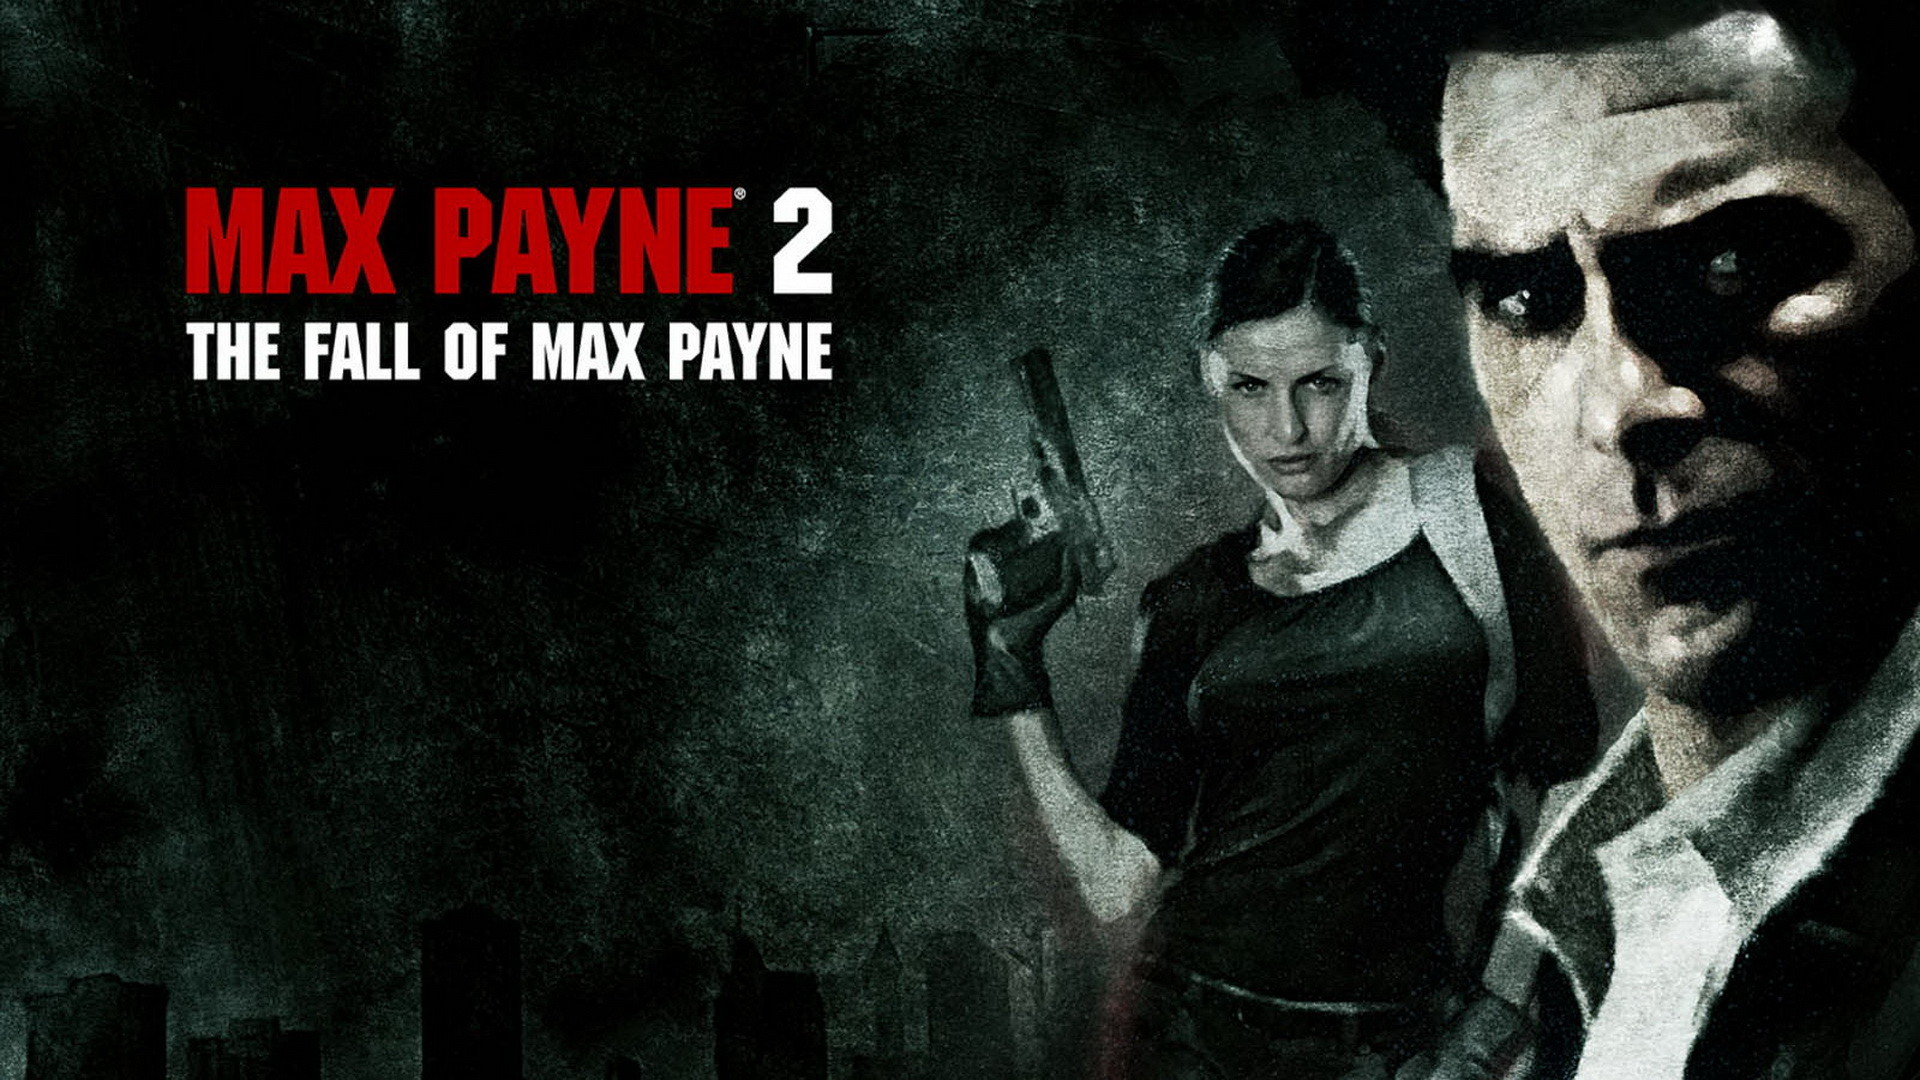 1920x1080 8 Max Payne 2: The Fall of Max Payne HD Wallpapers | Backgrounds - Wallpaper  Abyss